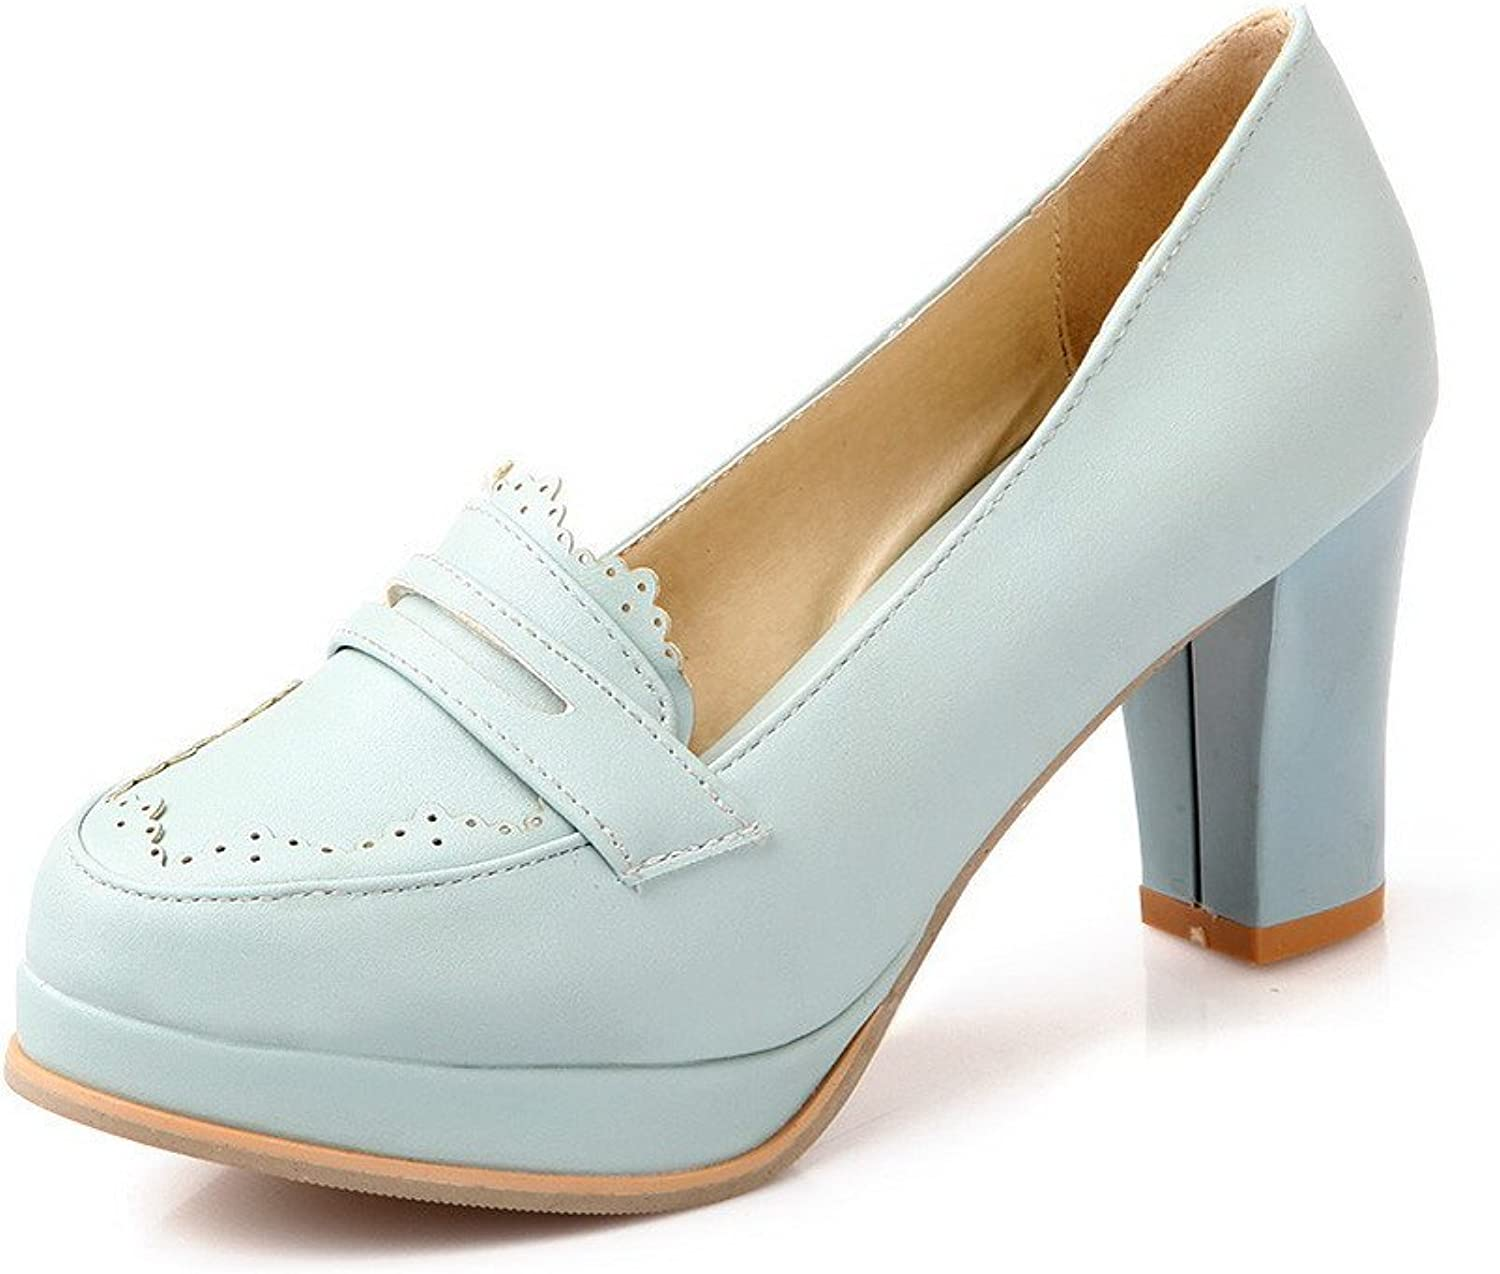 WeenFashion Women's Pull On Round Closed Toe High Heels Solid Pumps-shoes